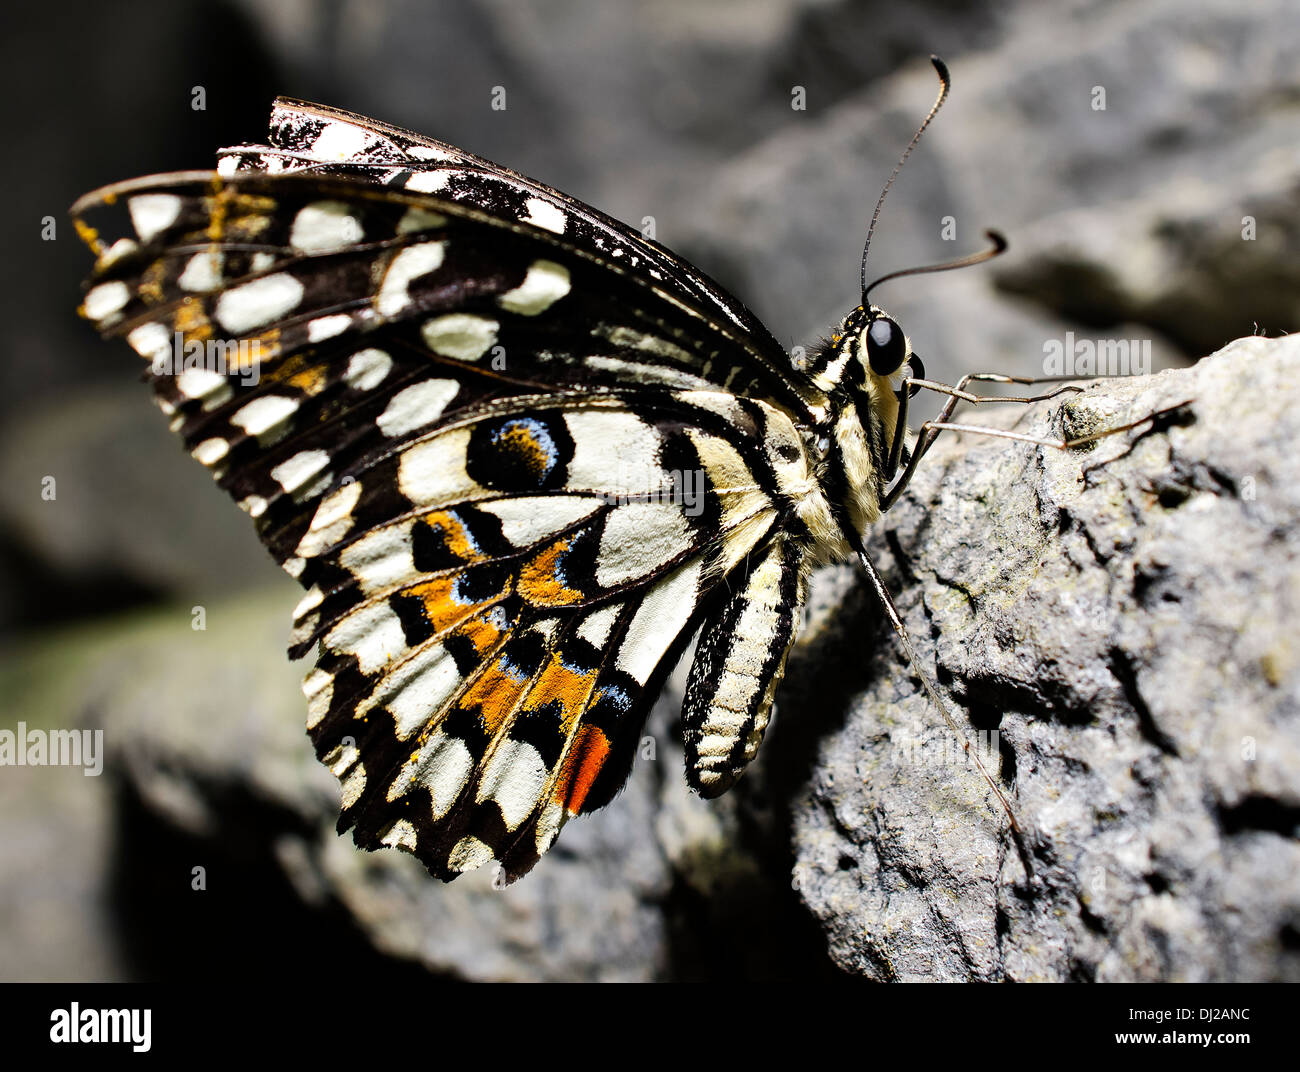 Butterfly perched on rock - Stock Image